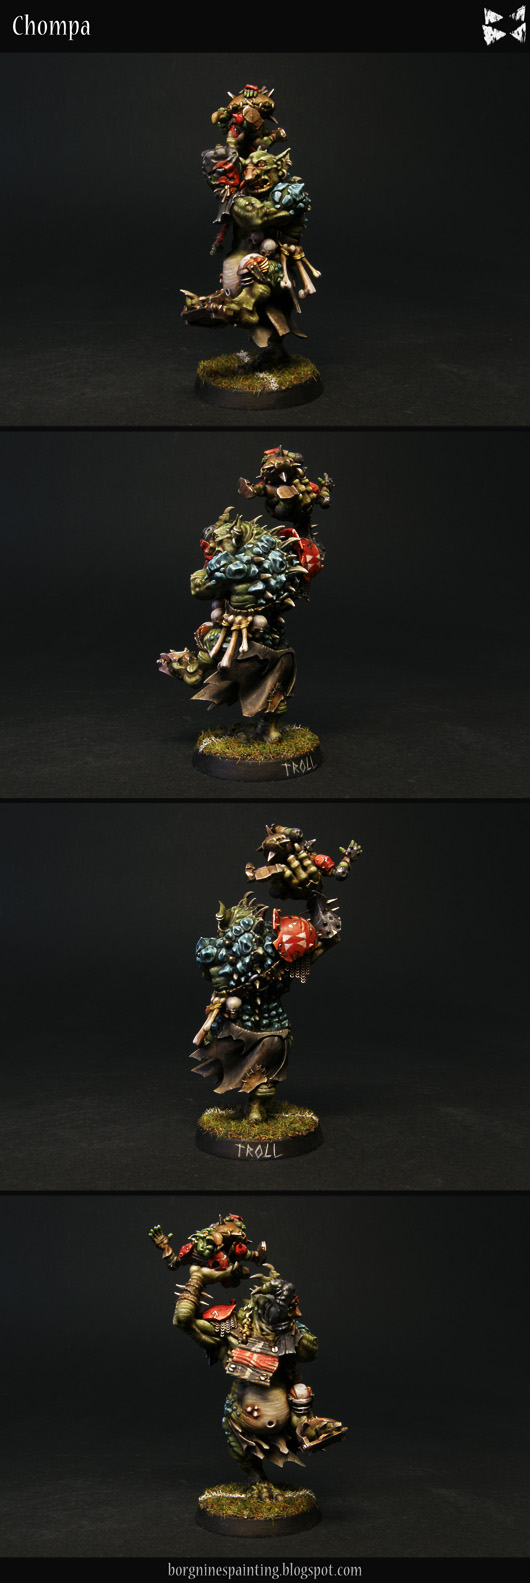 Blood Bowl Troll miniature from Games Workshop, painted with green skin, blue scales and red armor, holding a goblin, getting prepared to throw him - visible from several angles.